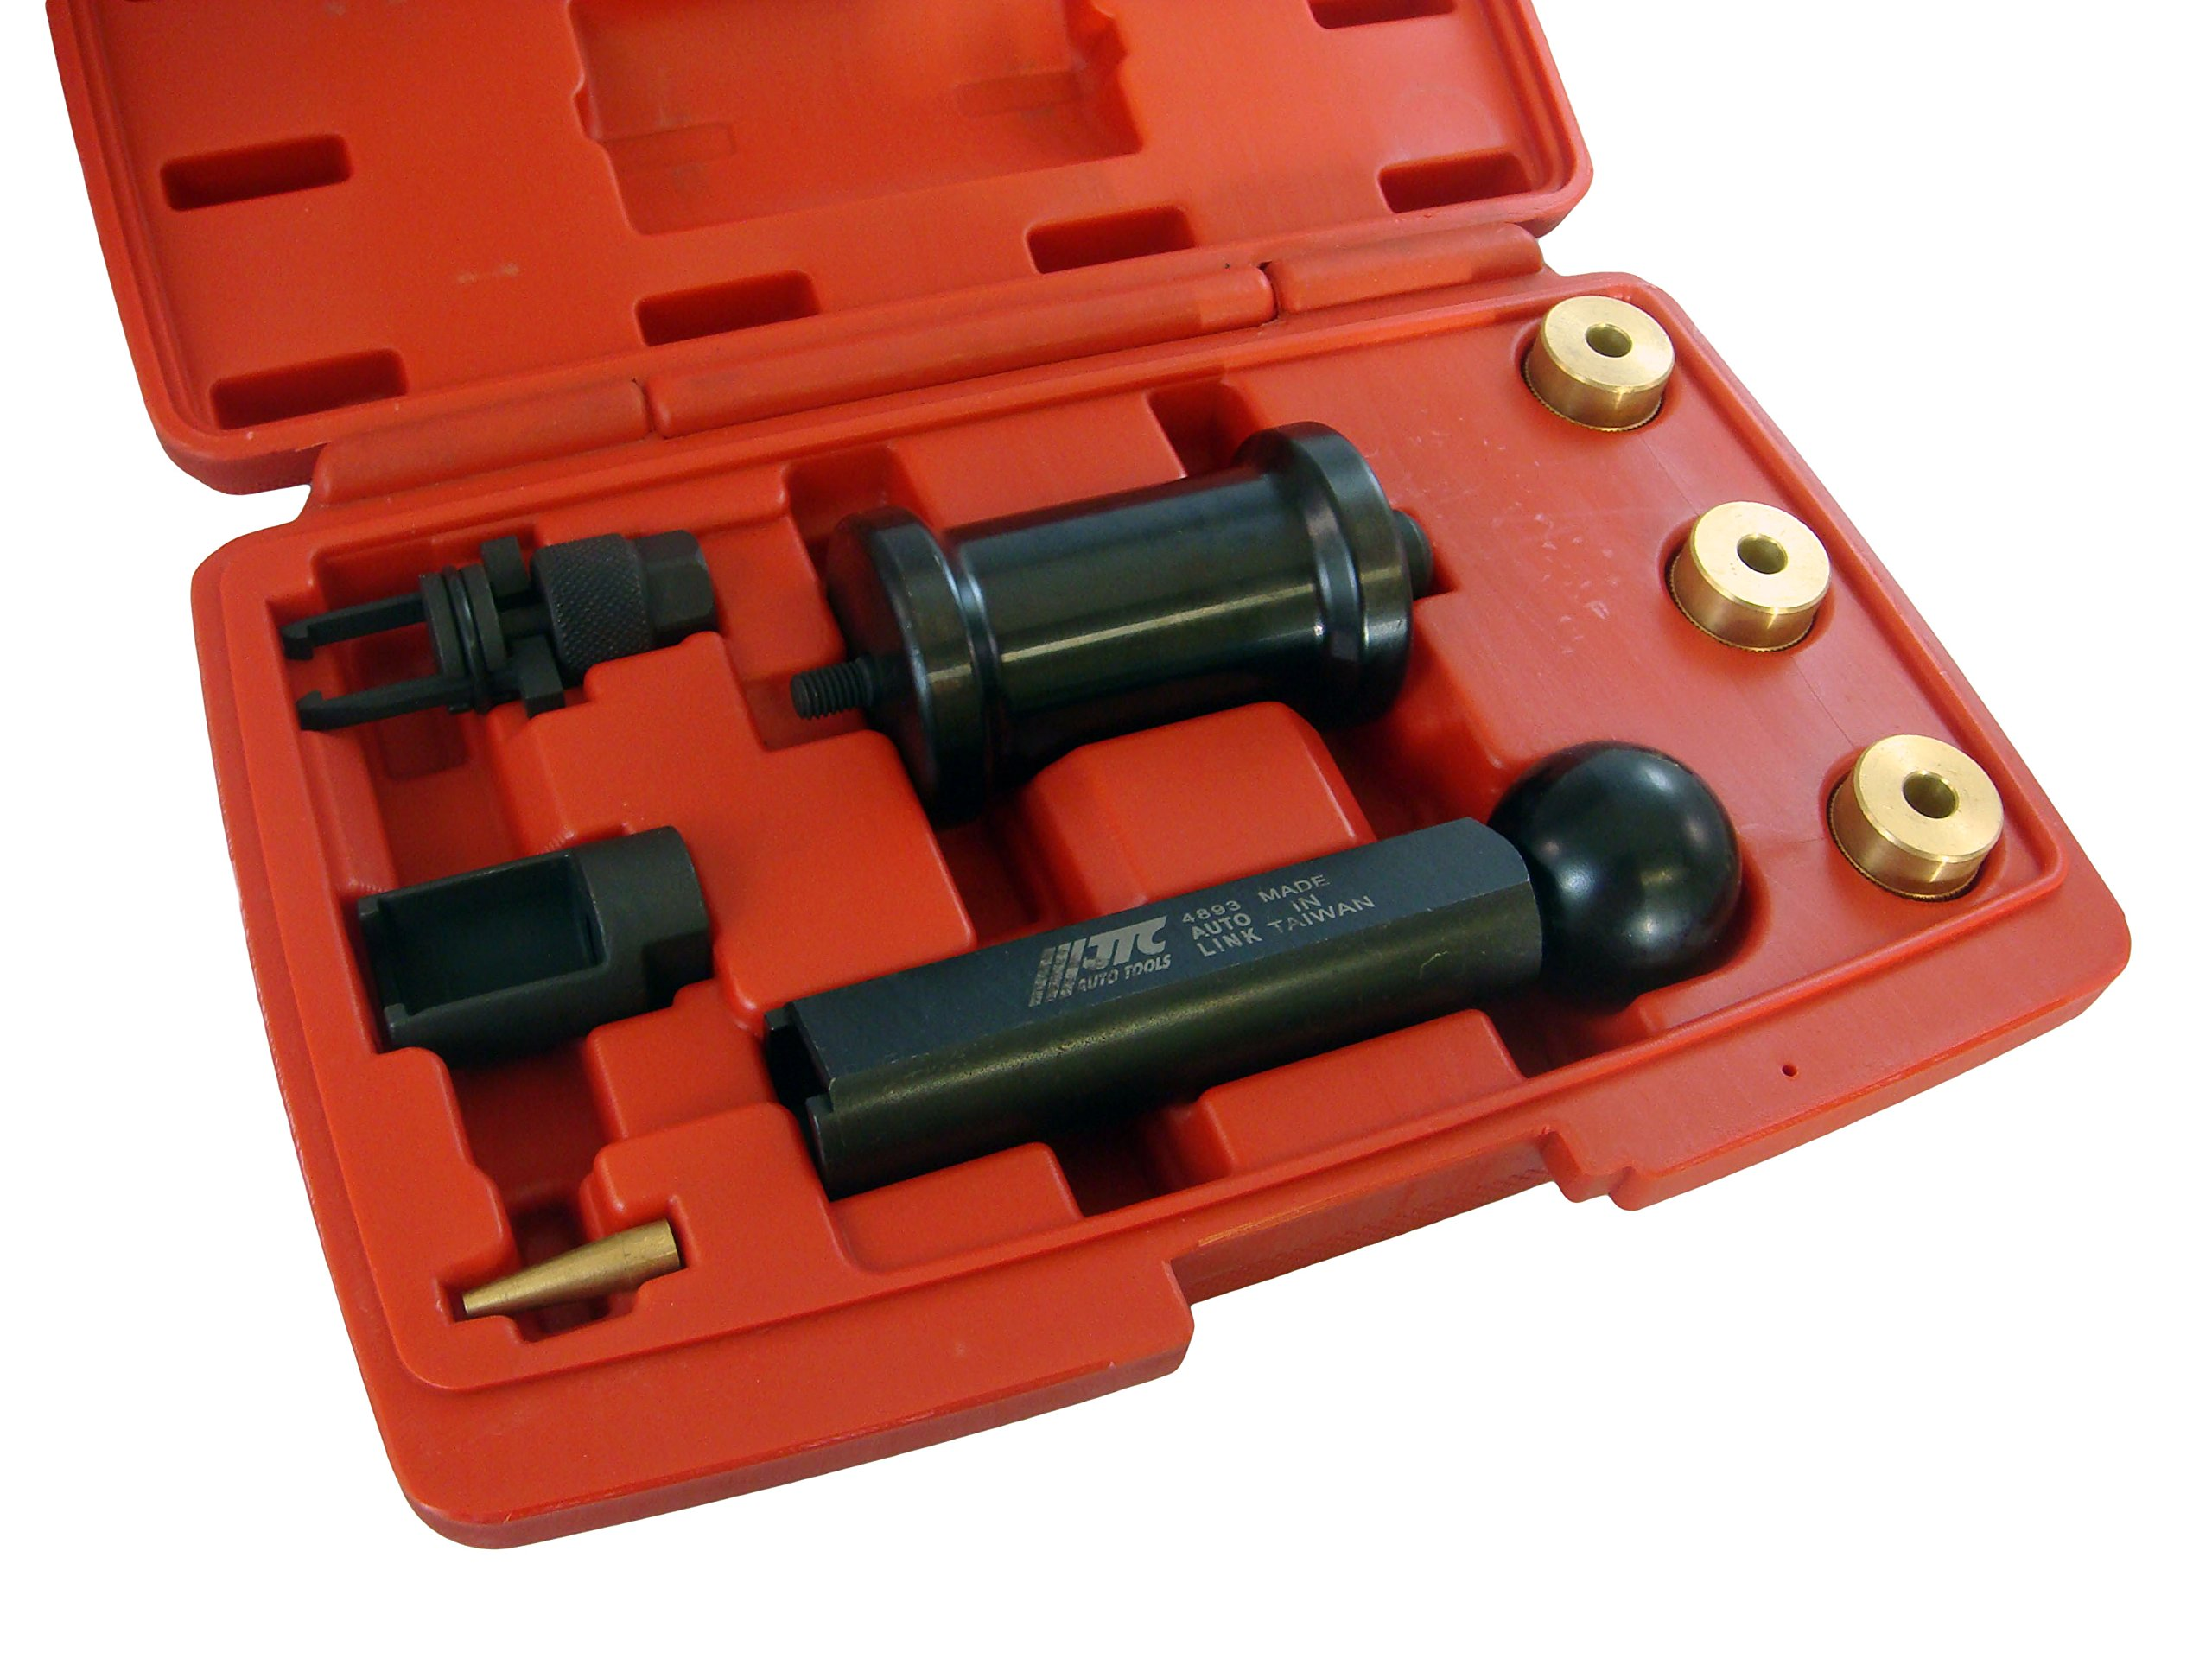 VOLKSWAGEN, AUDI INJECTOR REMOVER (FSI) BY JTC 4893 by JTC Tools (Image #2)